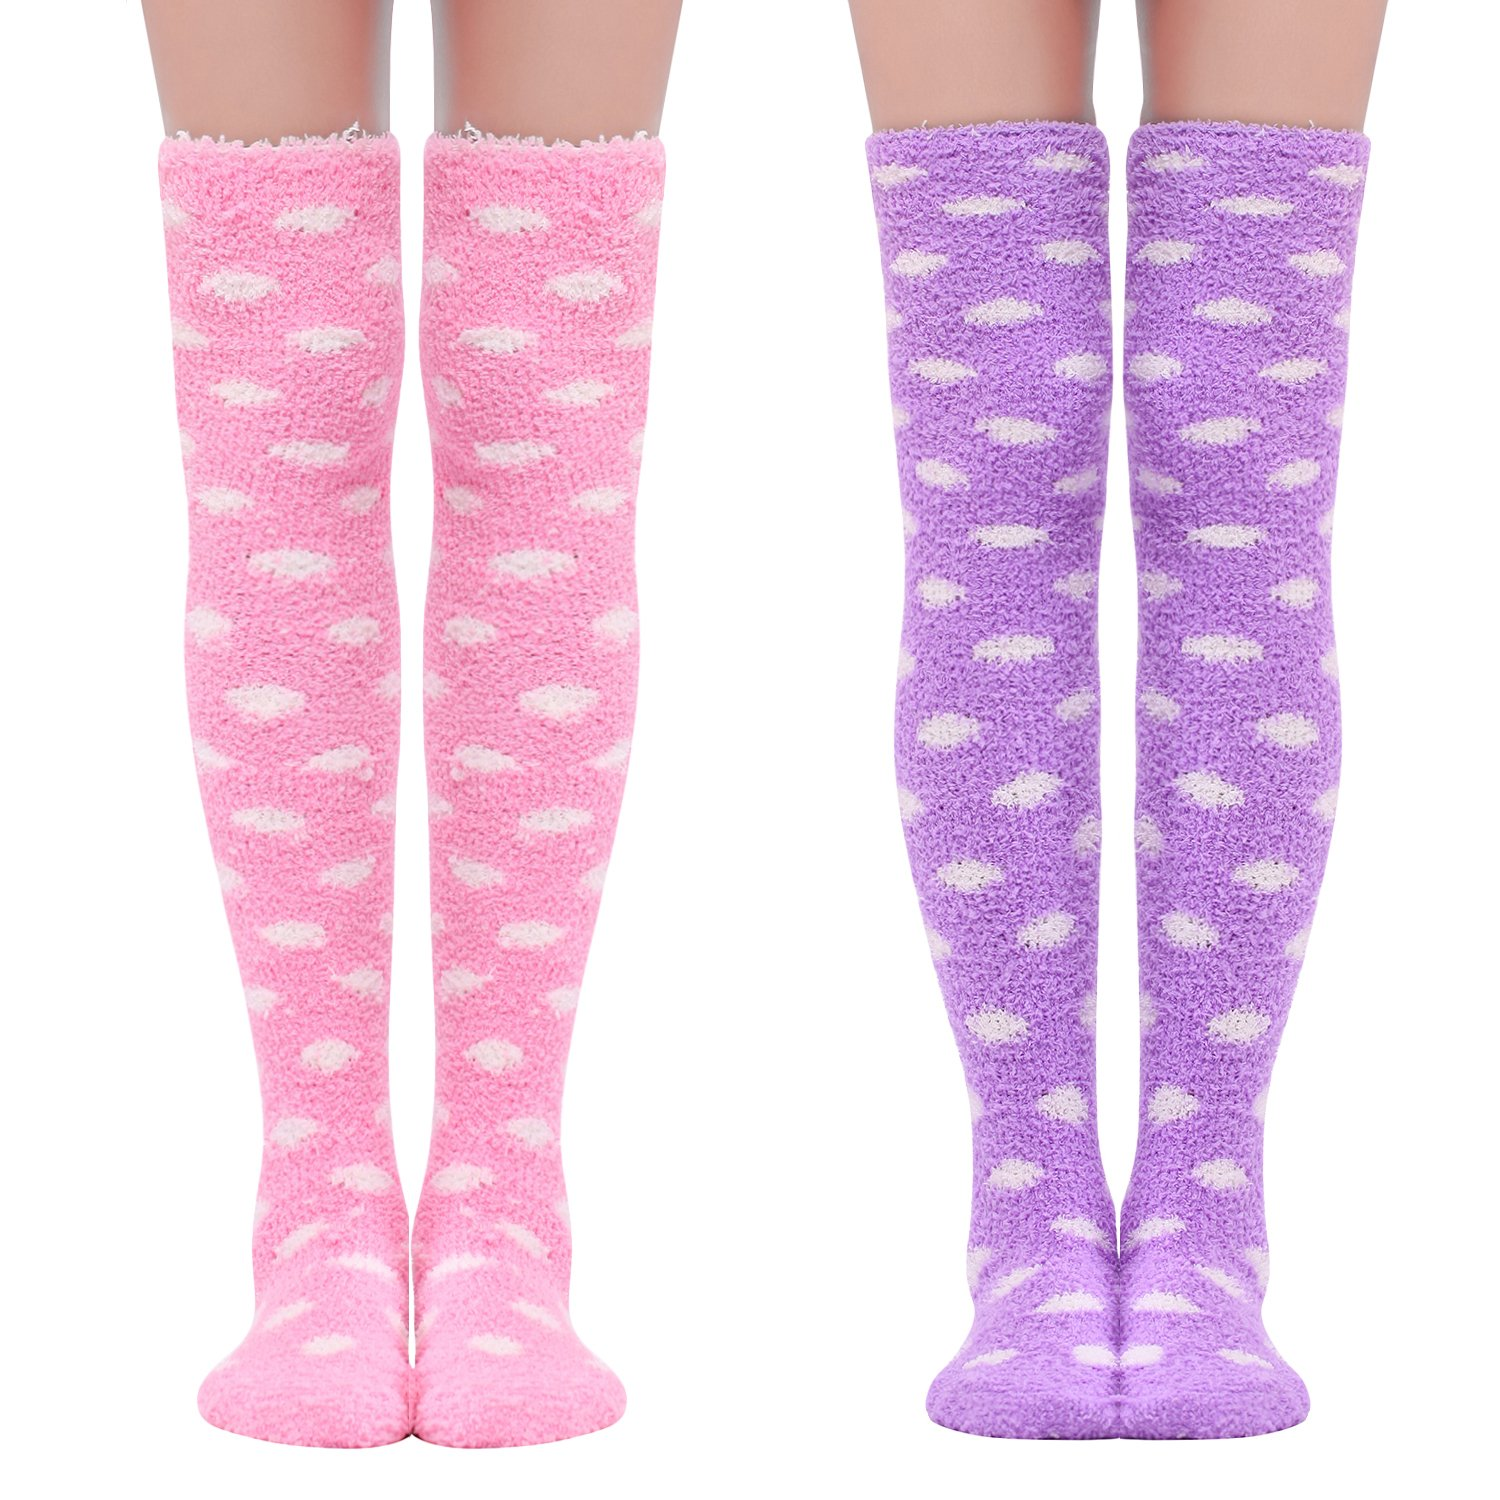 Littleforbig Cute Coral Fleece Thigh High Long Dotted Socks 2 Pairs by Littleforbig (Image #1)